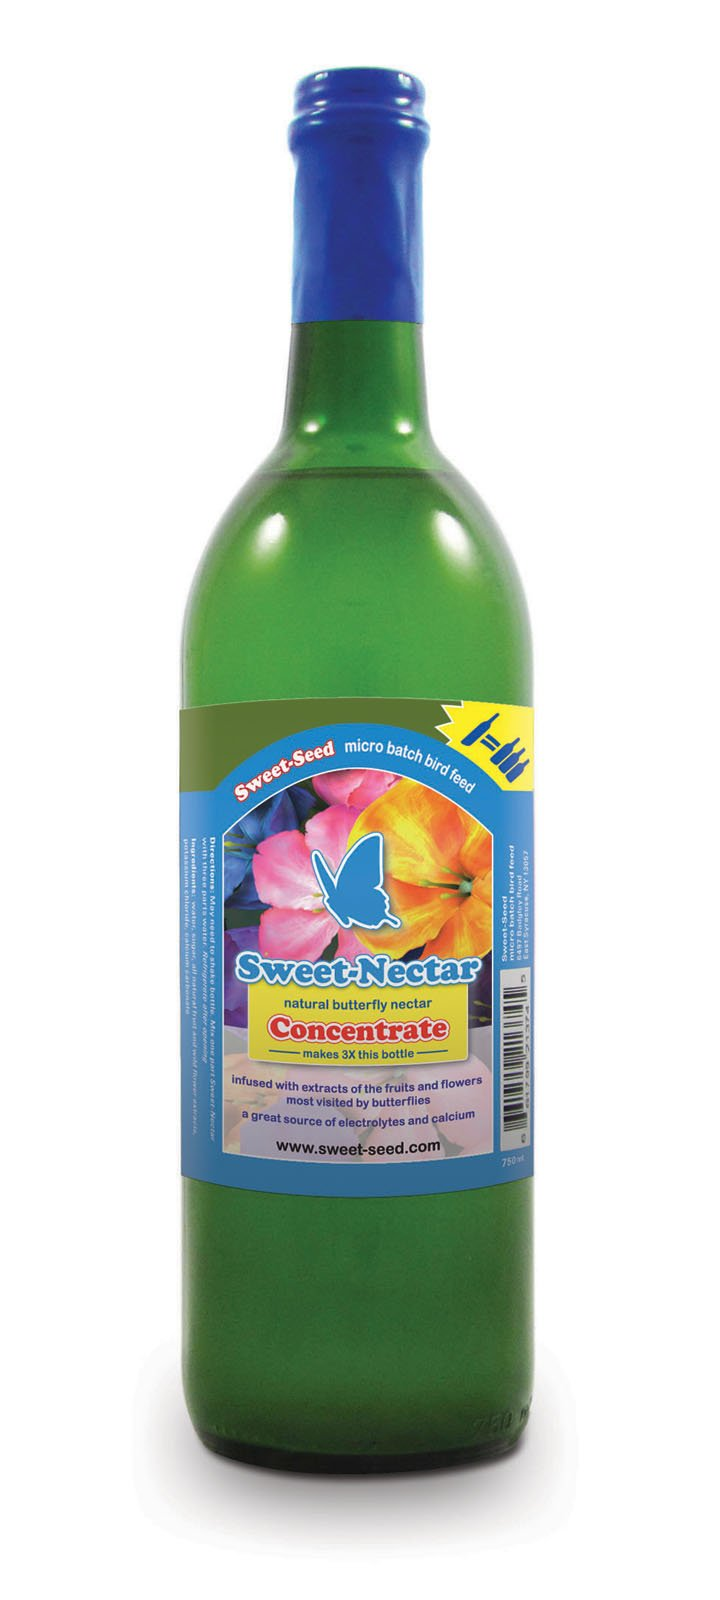 Sweet-Nectar Butterfly Food: All-natural & Dye Free Premium Butterfly Nectar Concentrate